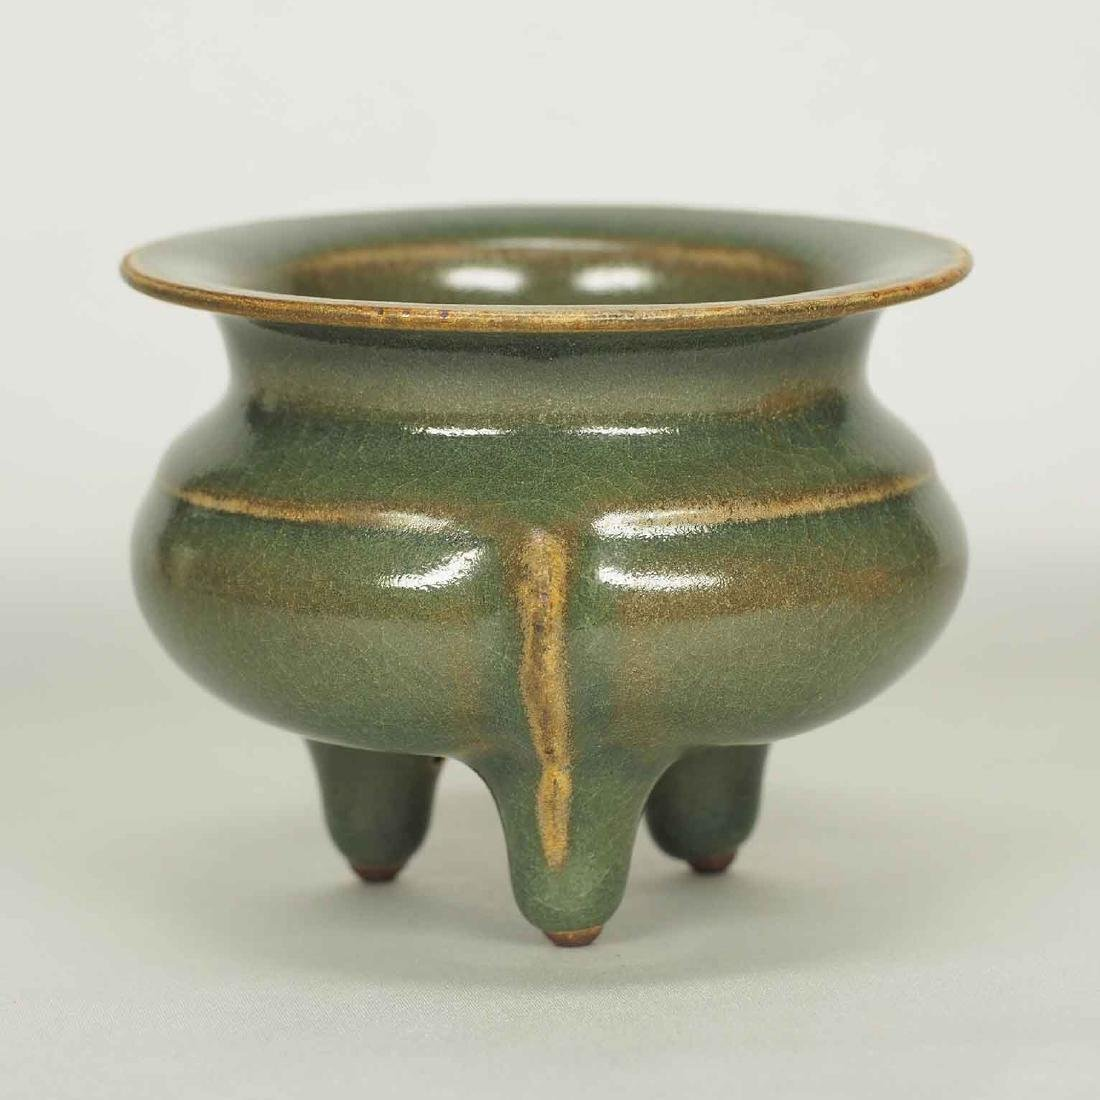 Xikou Guan Tripod Censer, Song Dynasty